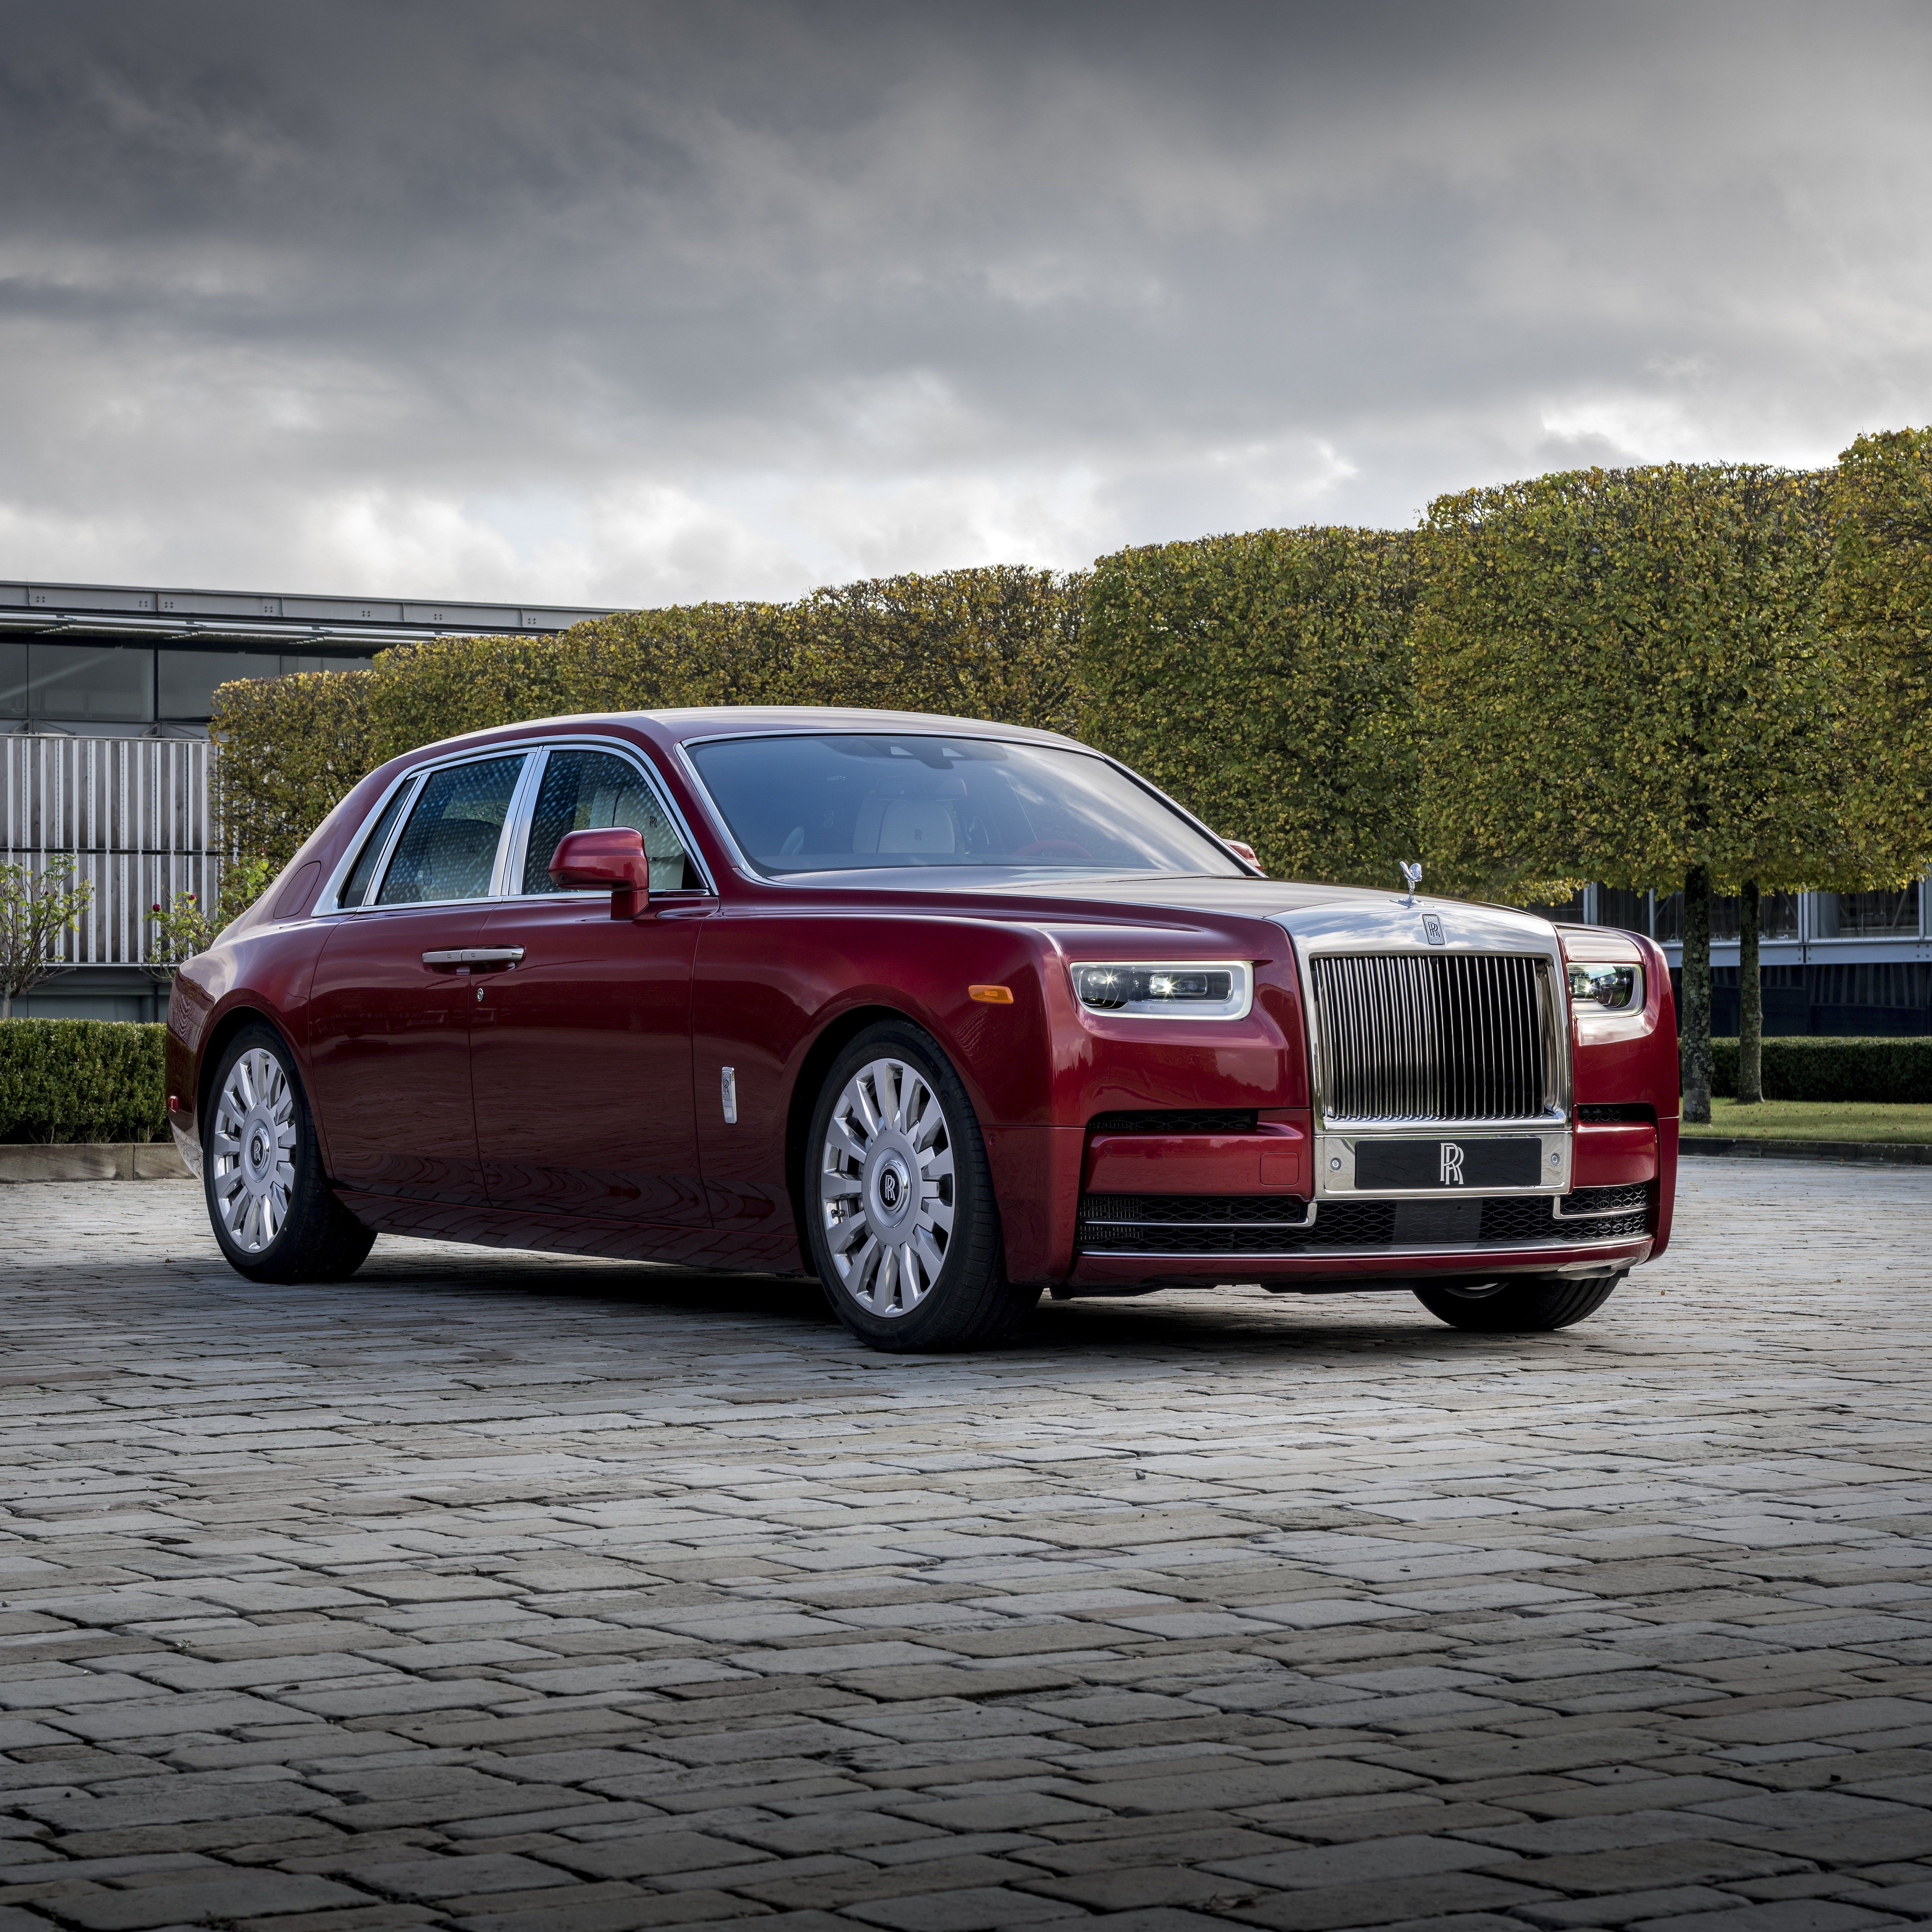 2020 Rolls Royce Phantom Review Pricing And Specs